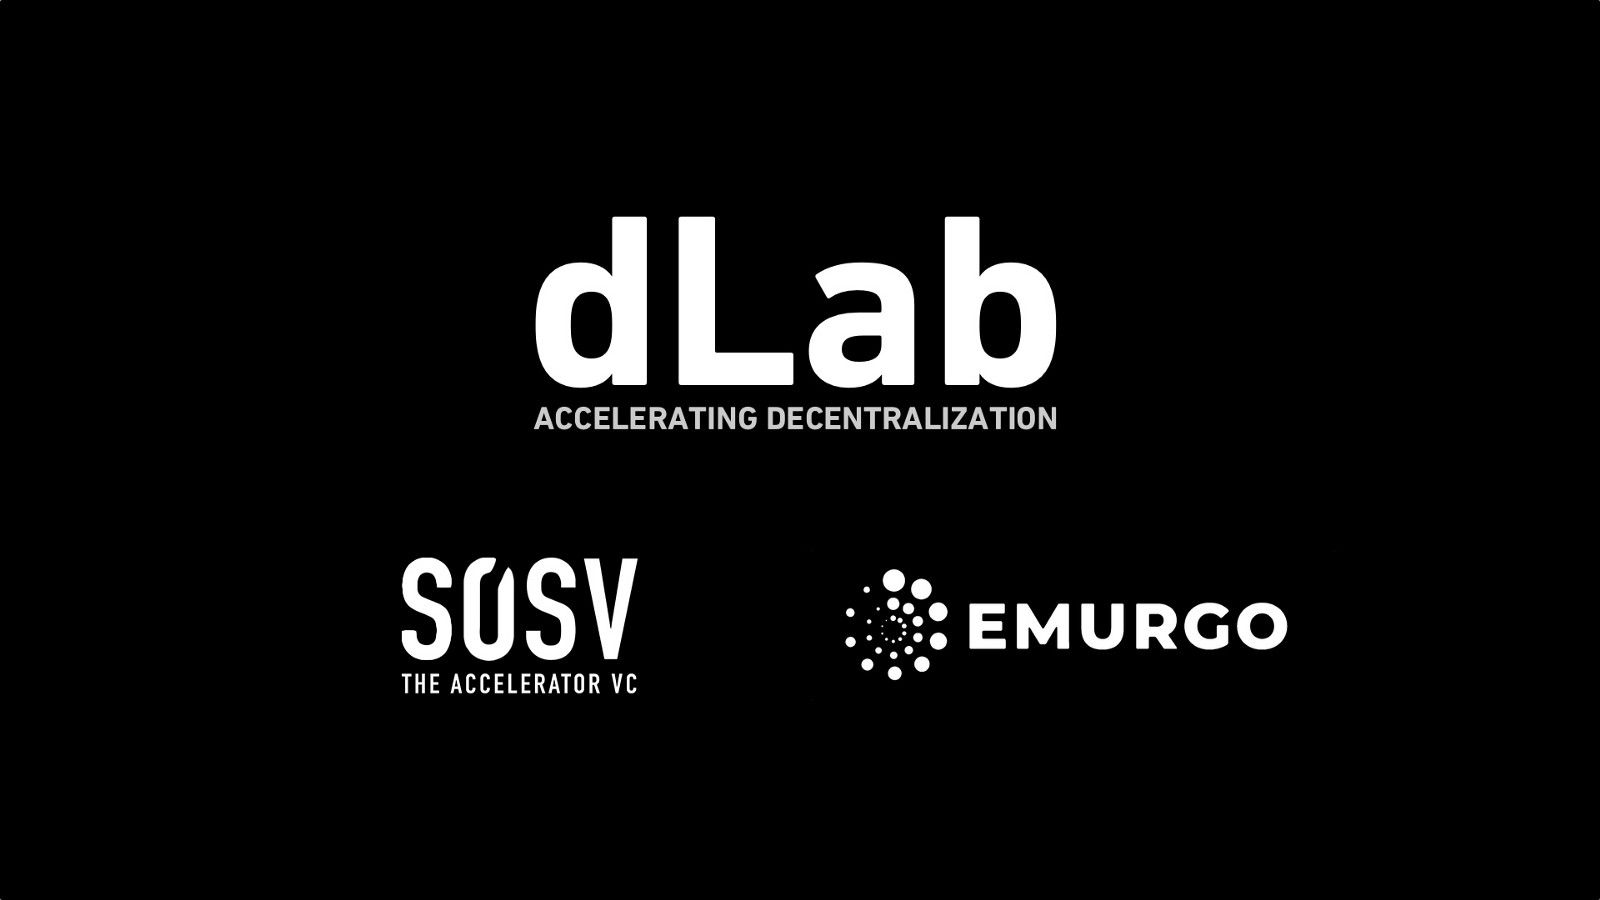 Meet the Four Companies Kicking Off the dLab/EMURGO Accelerator Program